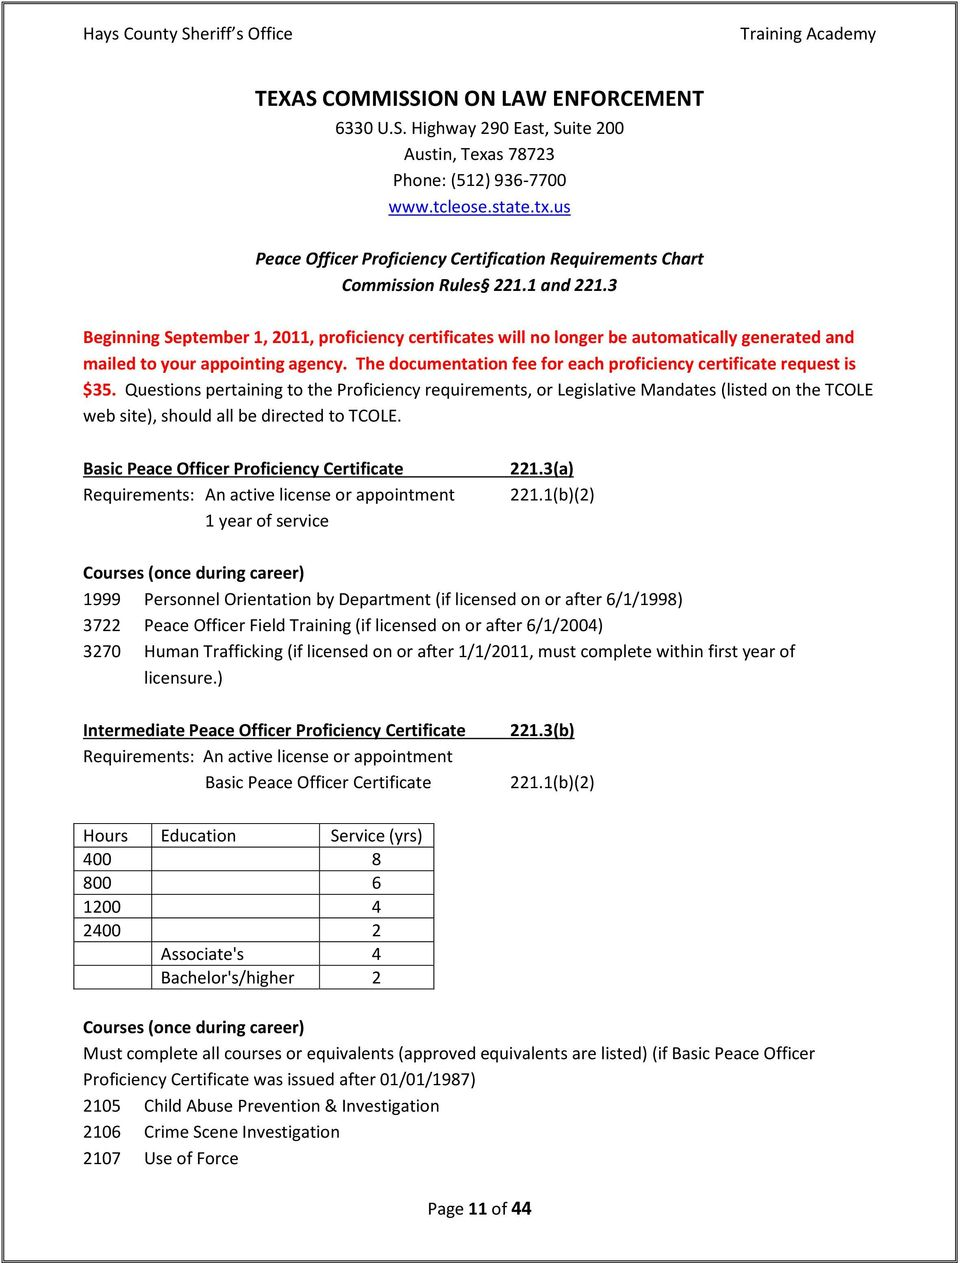 Hays County Sheriff S Office Training Academy Course Schedule Pdf